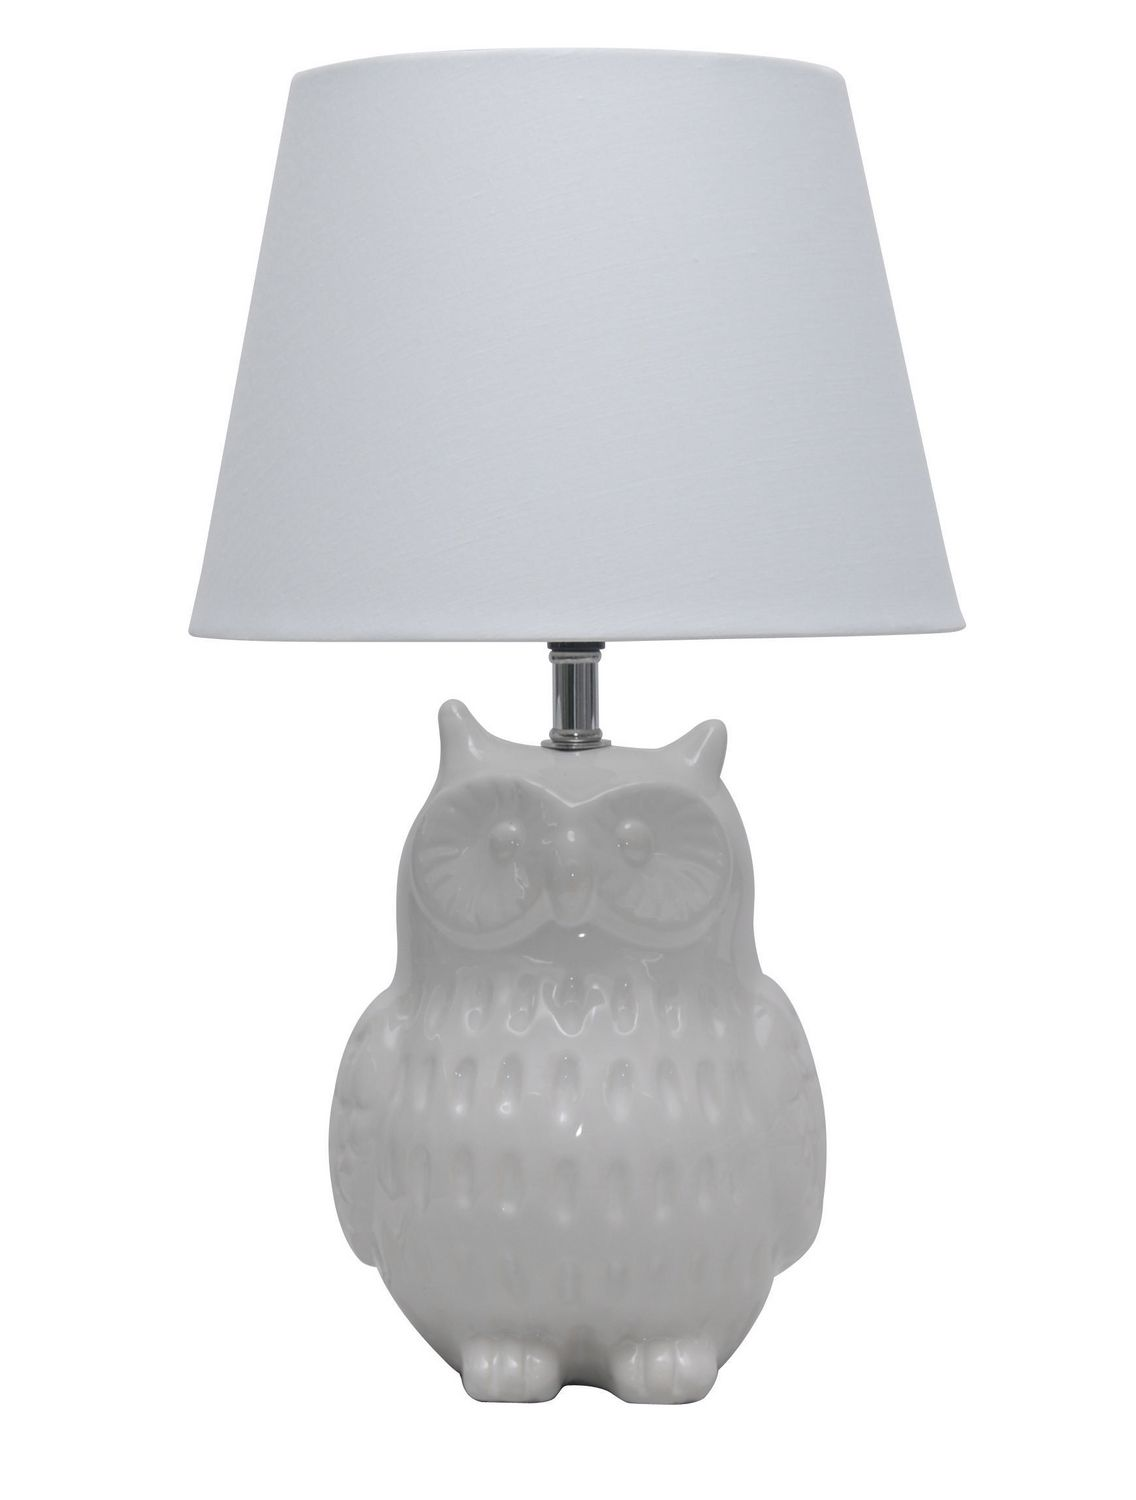 145 ceramic owl table lamp white walmart canada aloadofball Images